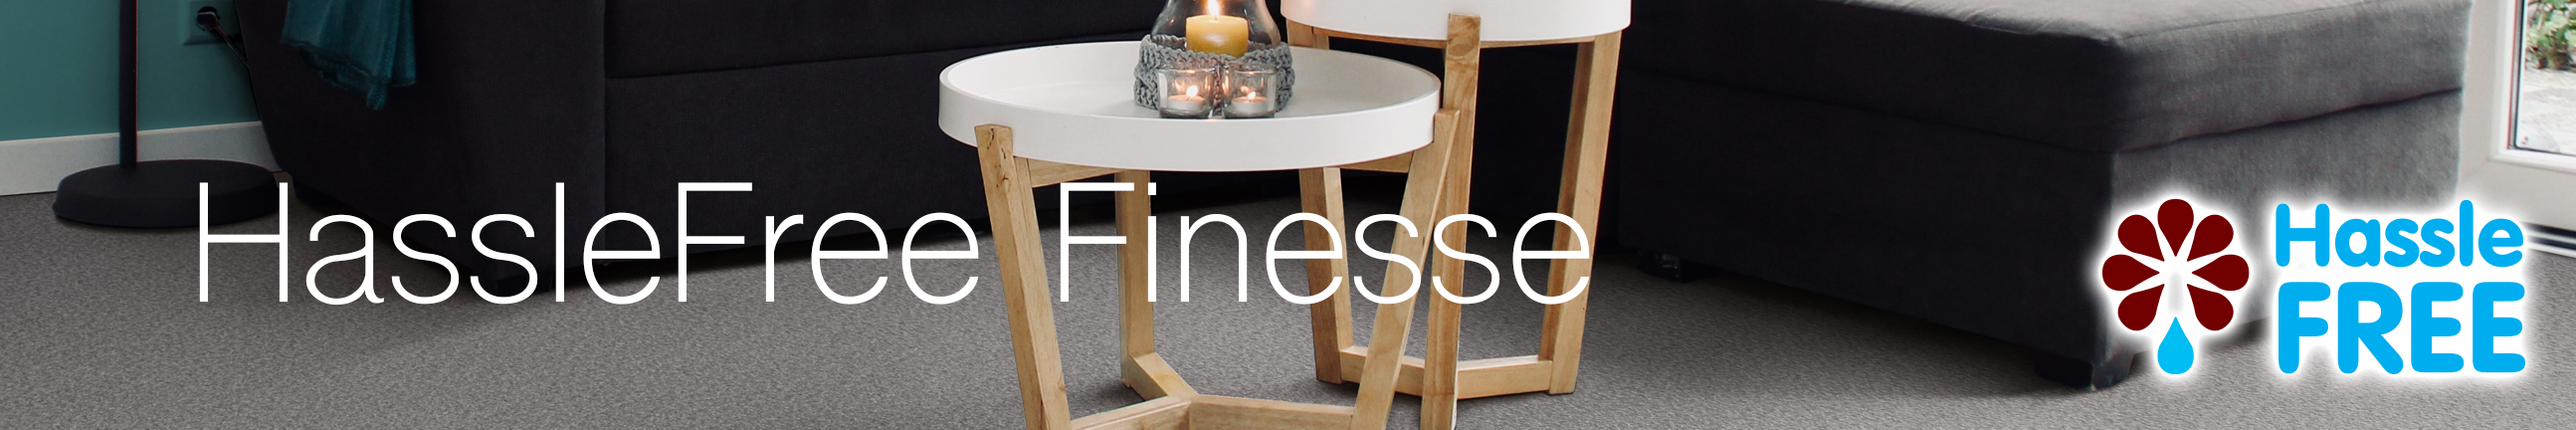 HassleFree Finesse Carpet Header